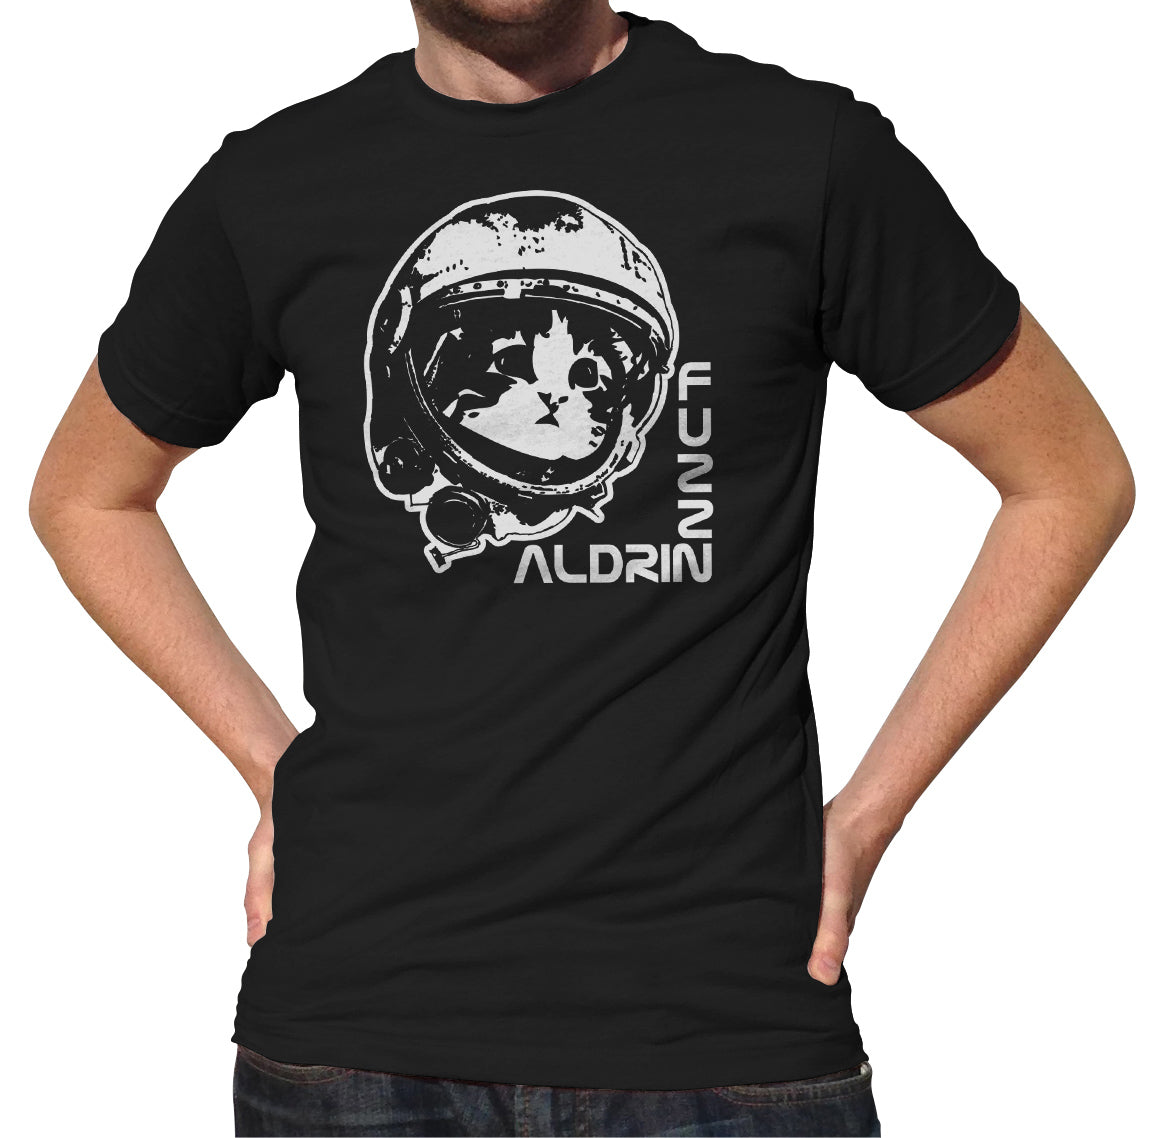 Men's Fuzz Aldrin T-Shirt - By Ex-Boyfriend